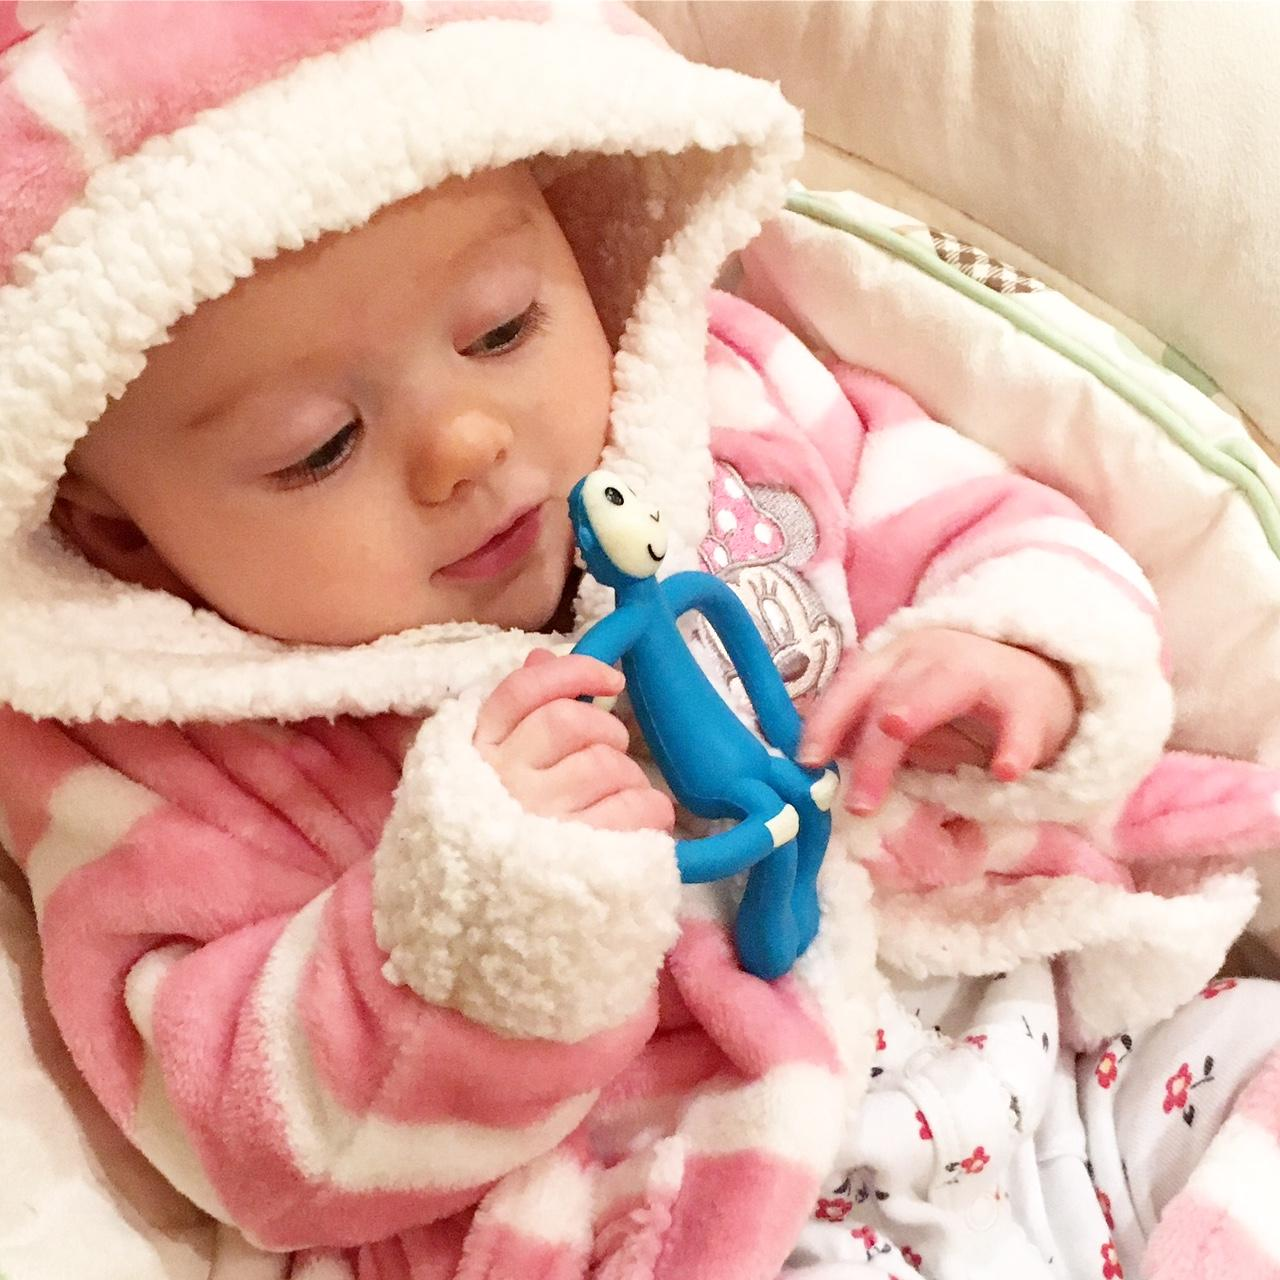 baby with matchstick monkey